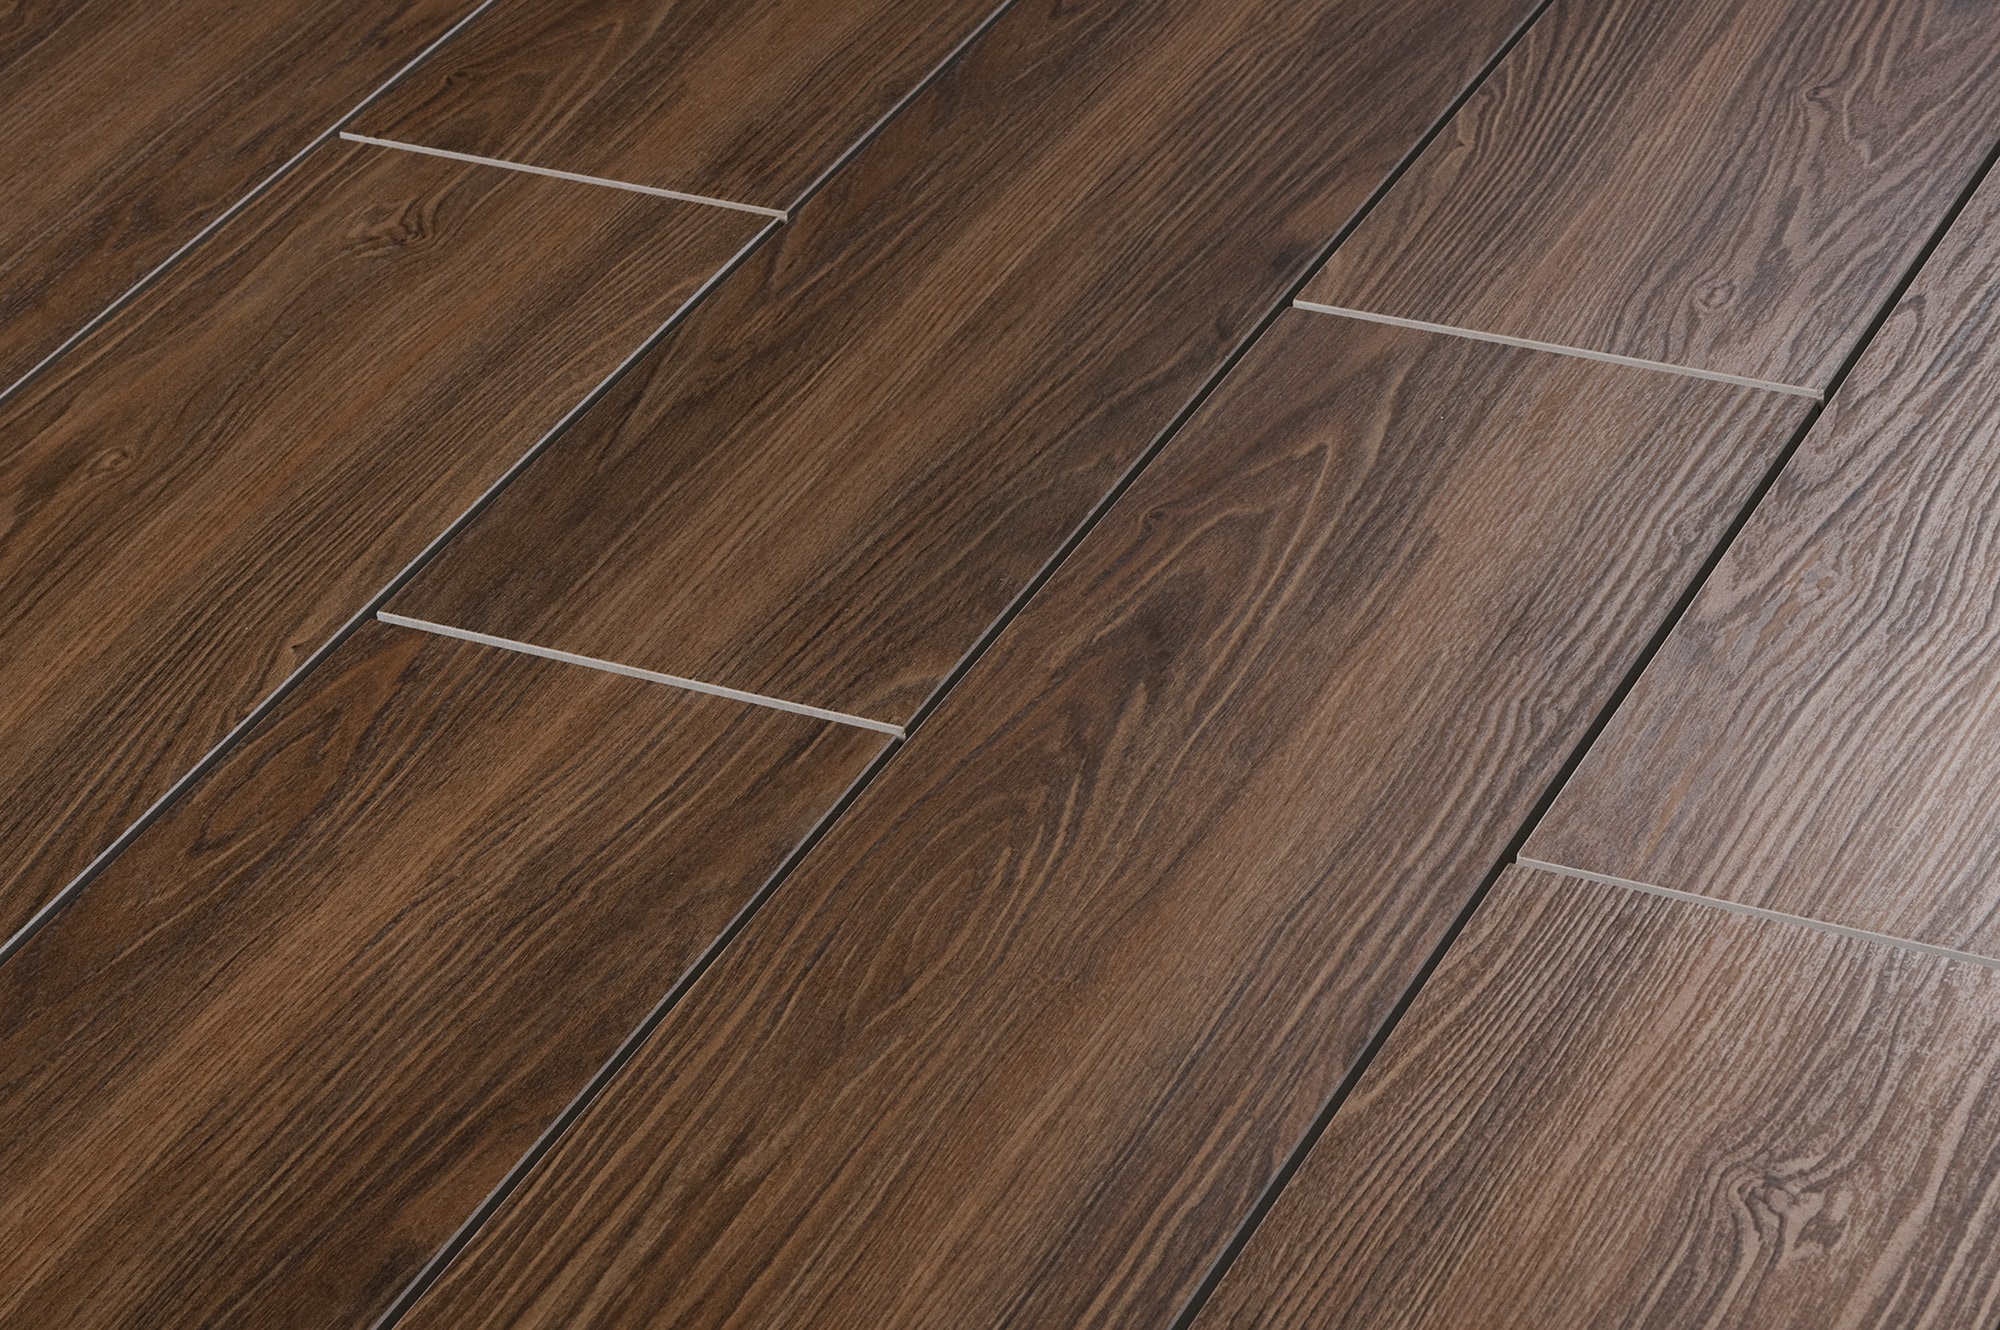 FREE Samples Salerno Porcelain Tile Hampton Wood Series Chestnut